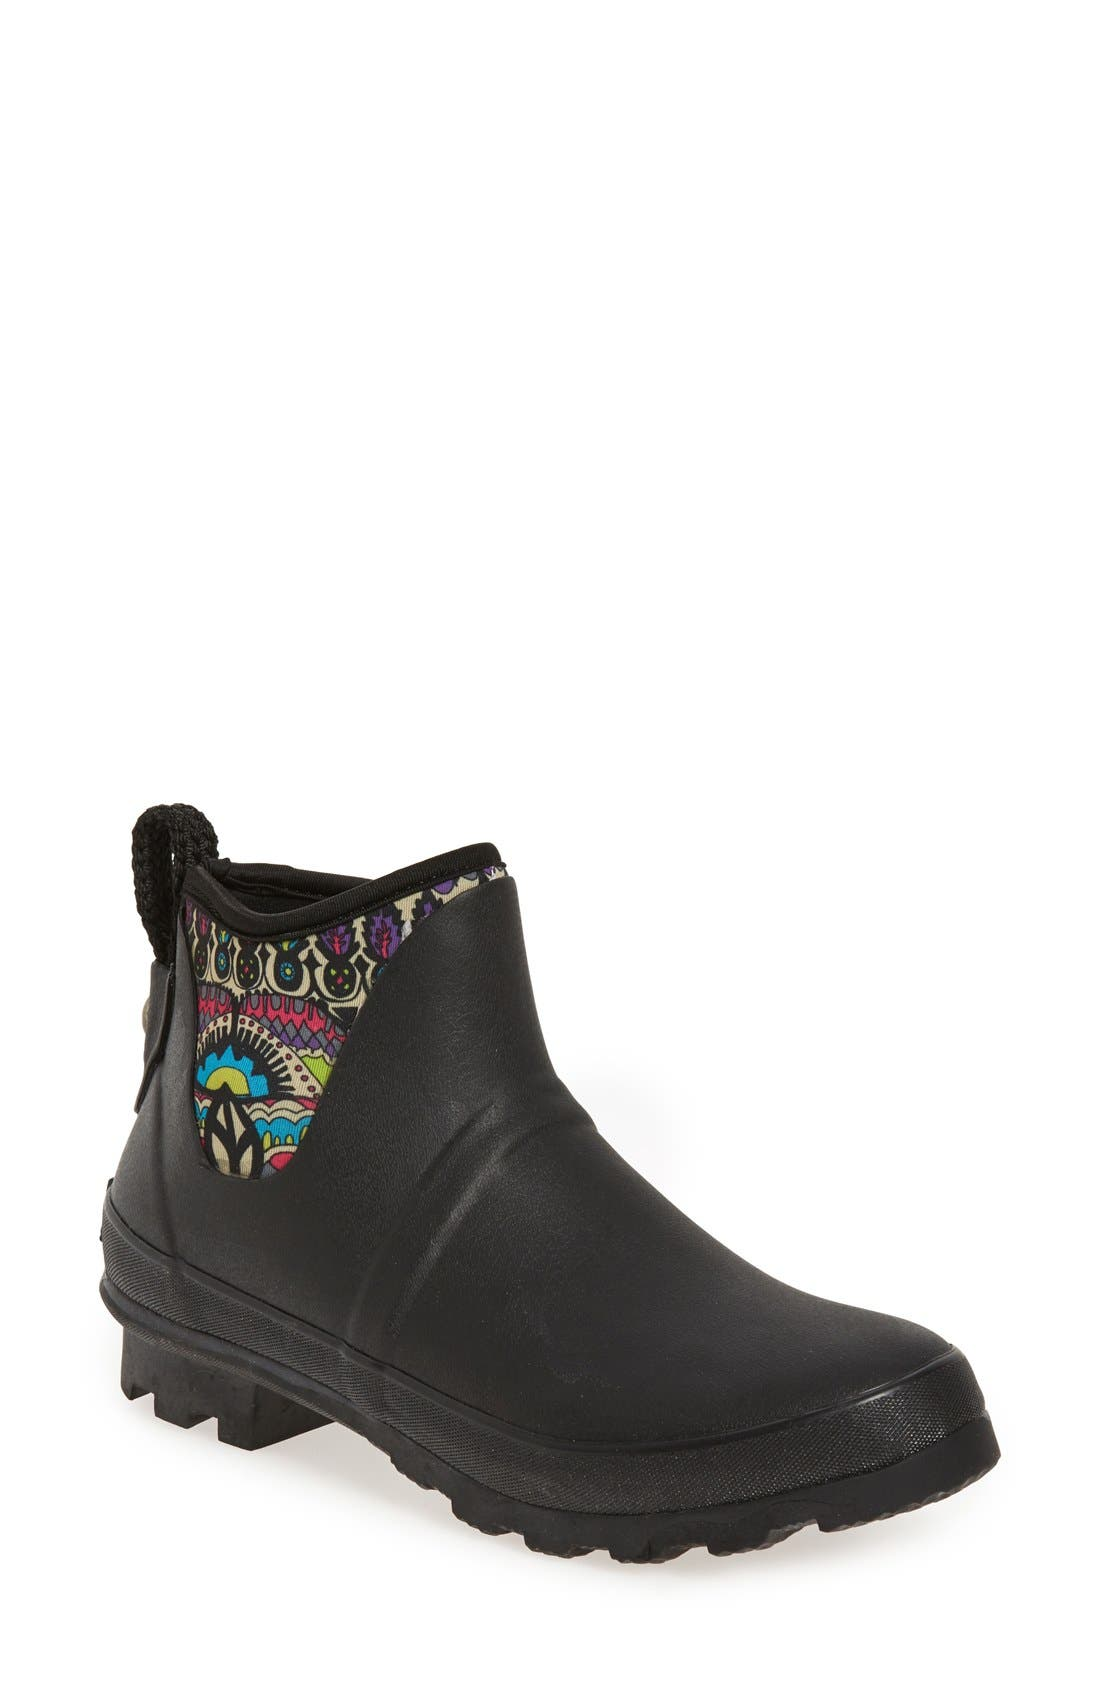 Main Image - Sakroots Mano Waterproof Rain Boot (Women)